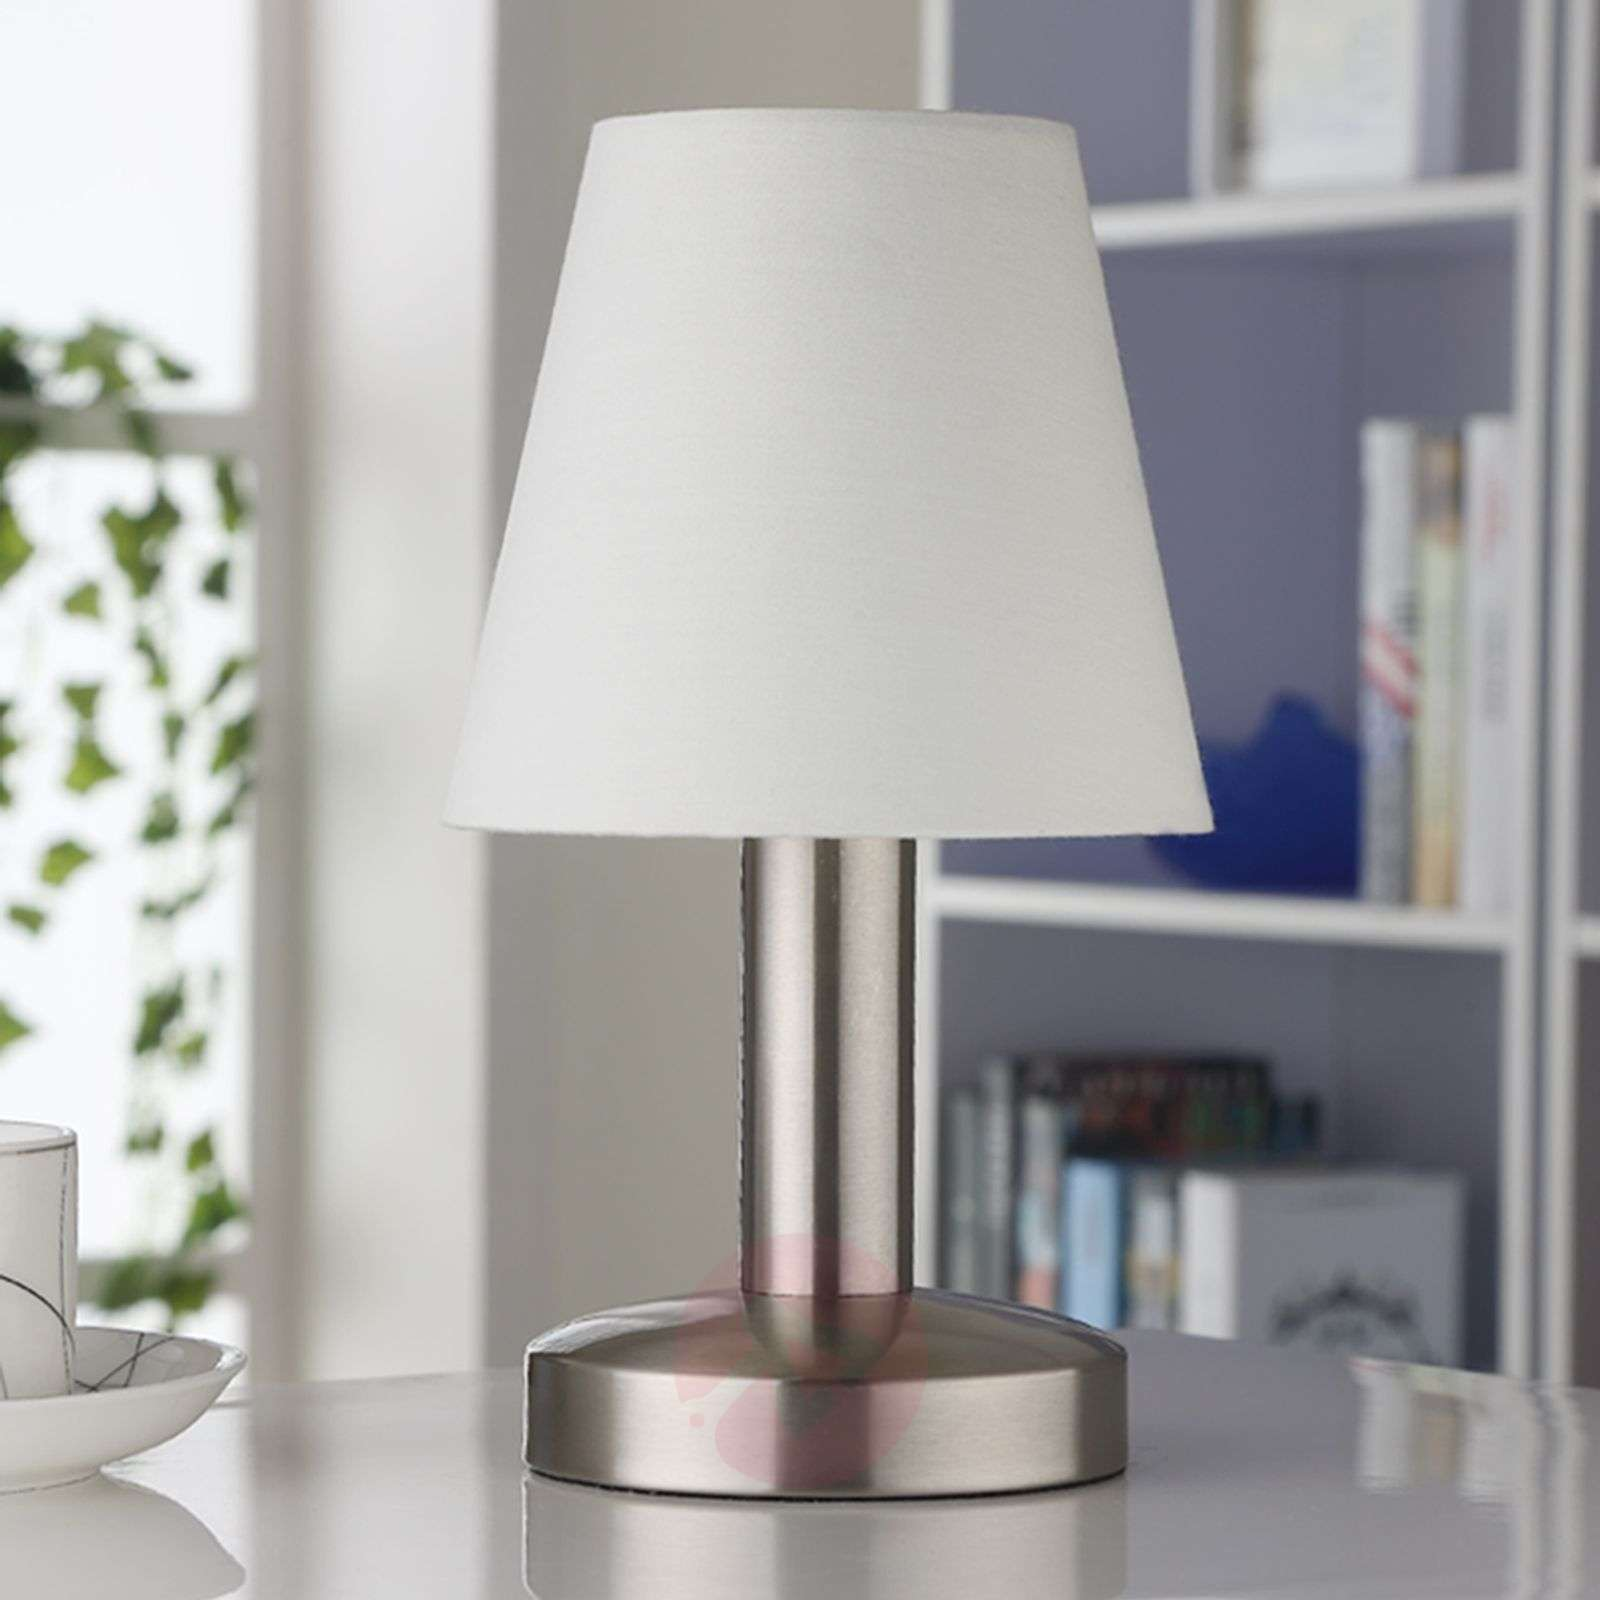 White fabric bedside table lamp Hanno-9620810-01